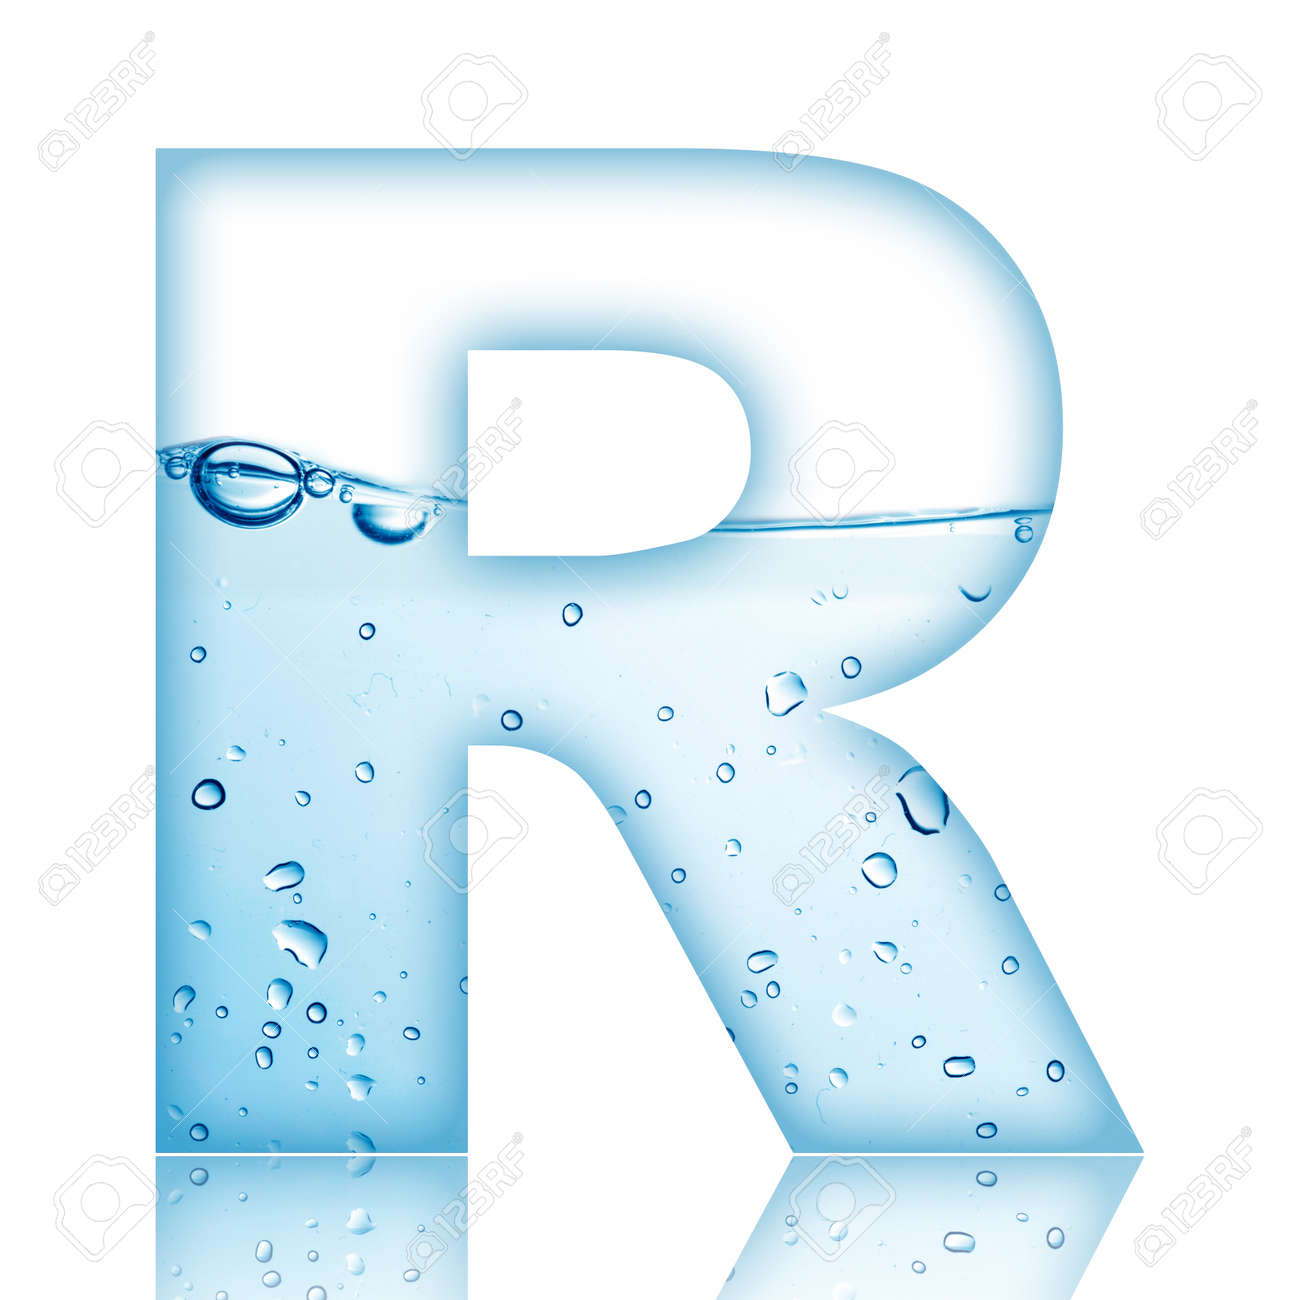 Water And Water Bubble Alphabet Letter With Reflection Letter